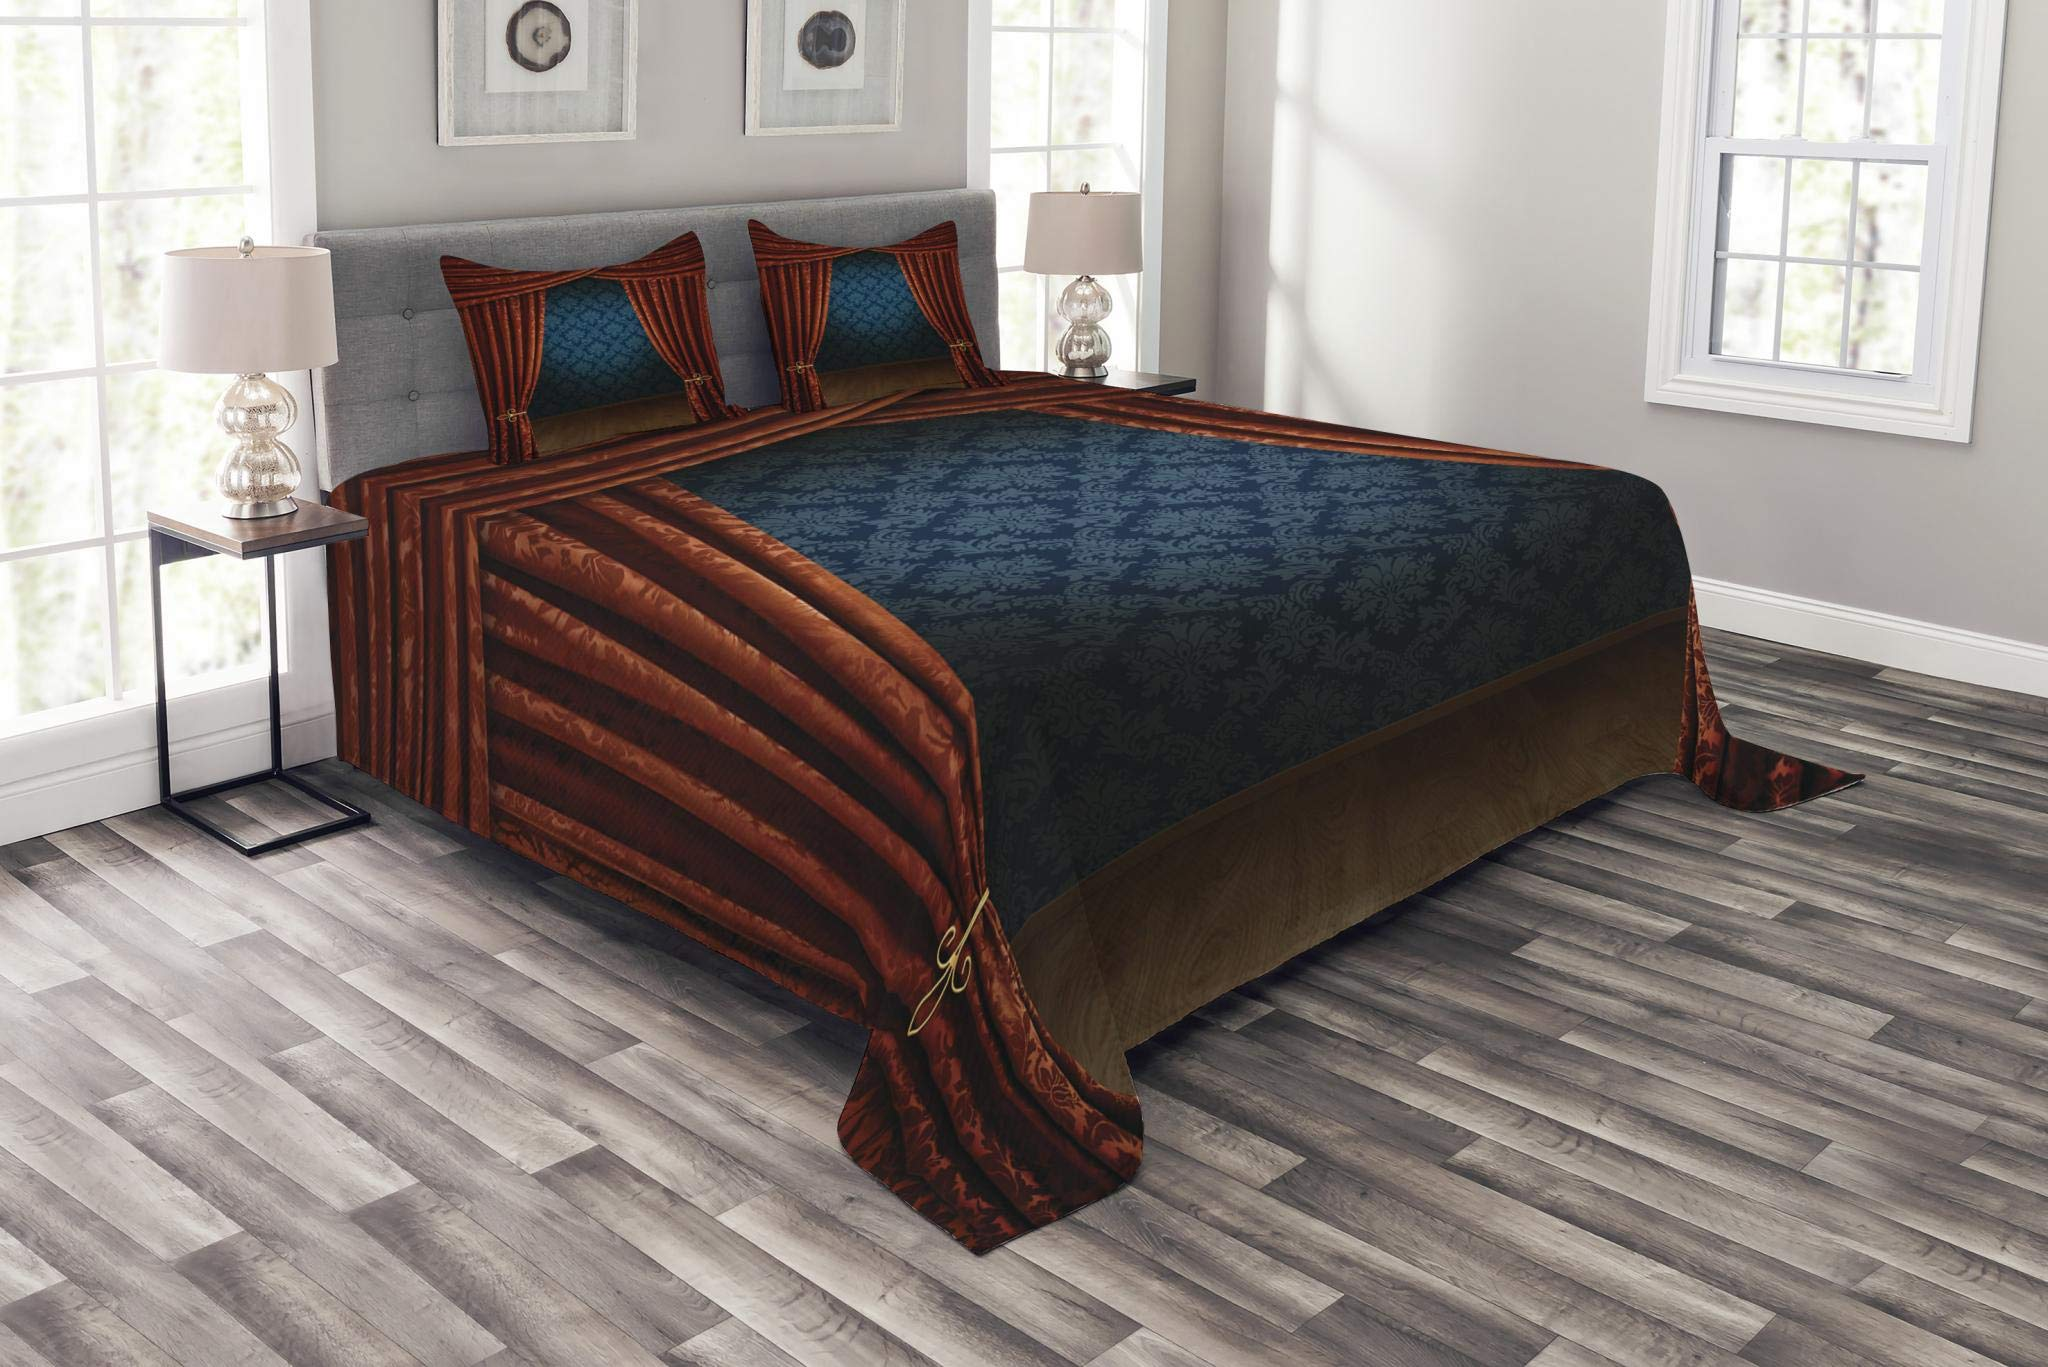 Ambesonne Victorian Bedspread Set King Size, Grand Opening Showroom with Retro Pattern Wall Classic Stage Theatrical, Decorative Quilted 3 Piece Coverlet Set with 2 Pillow Shams, Burgundy Multicolor